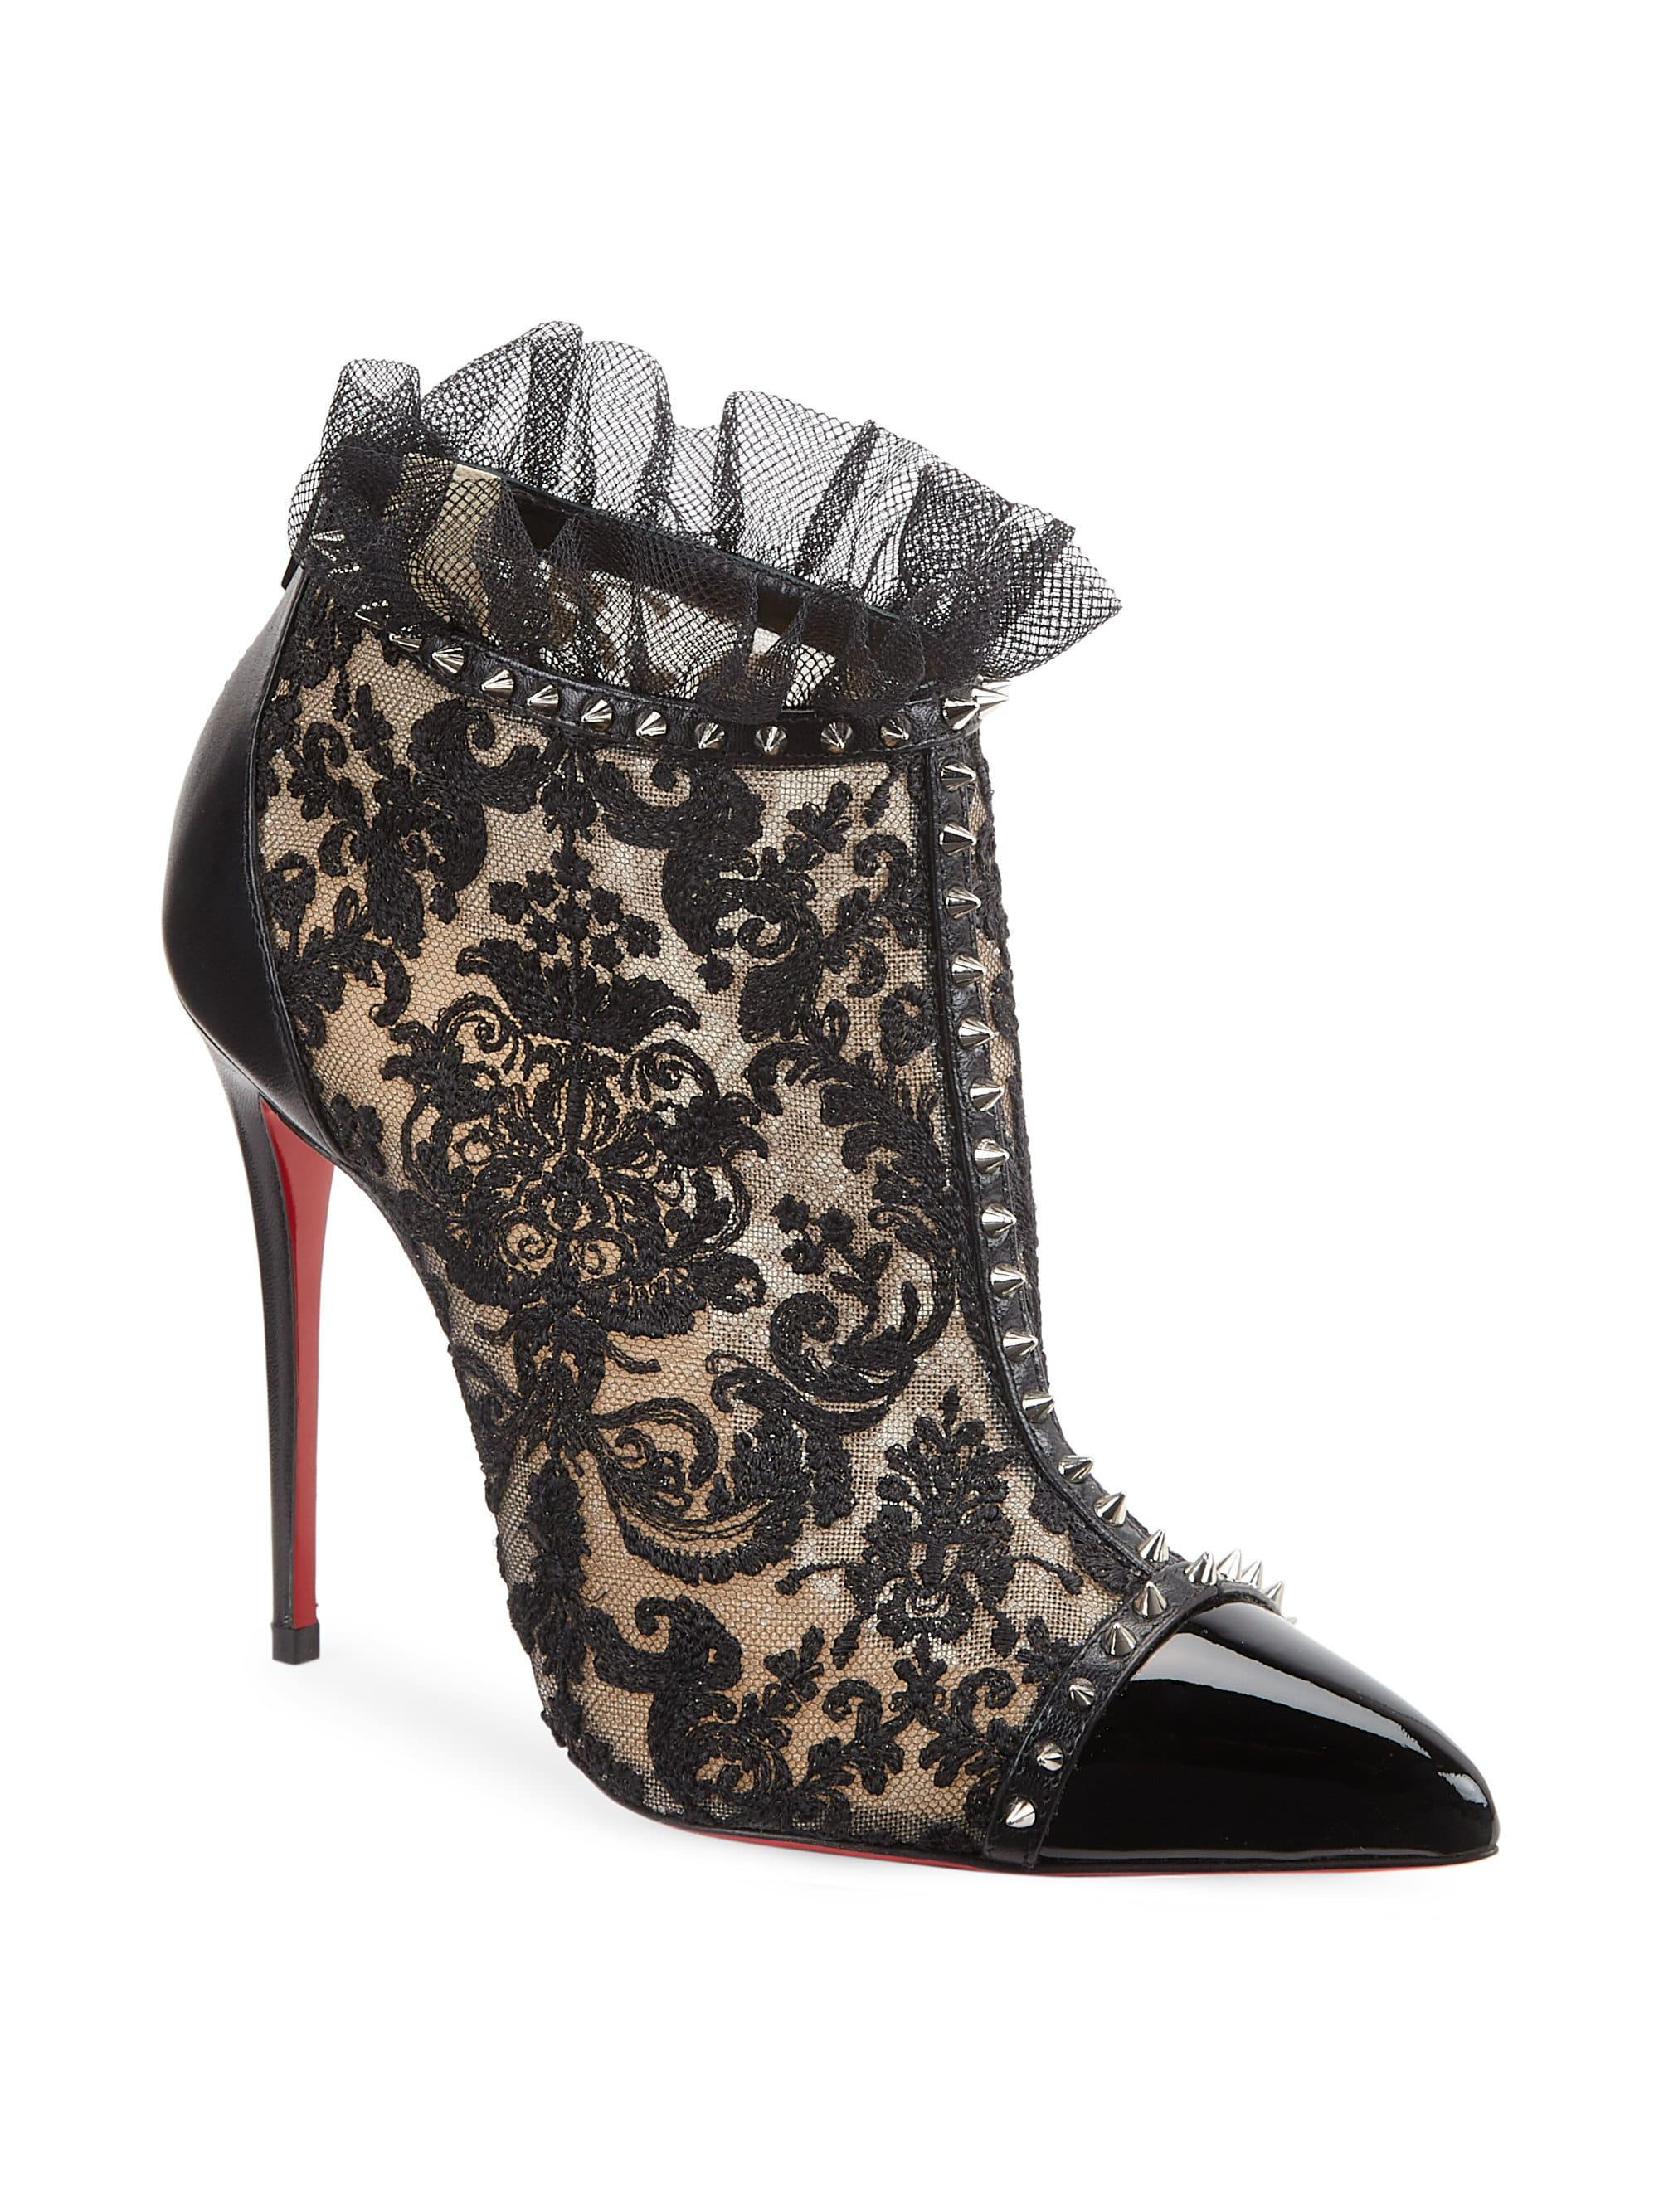 Christian Louboutin Pigalle 100 Studded